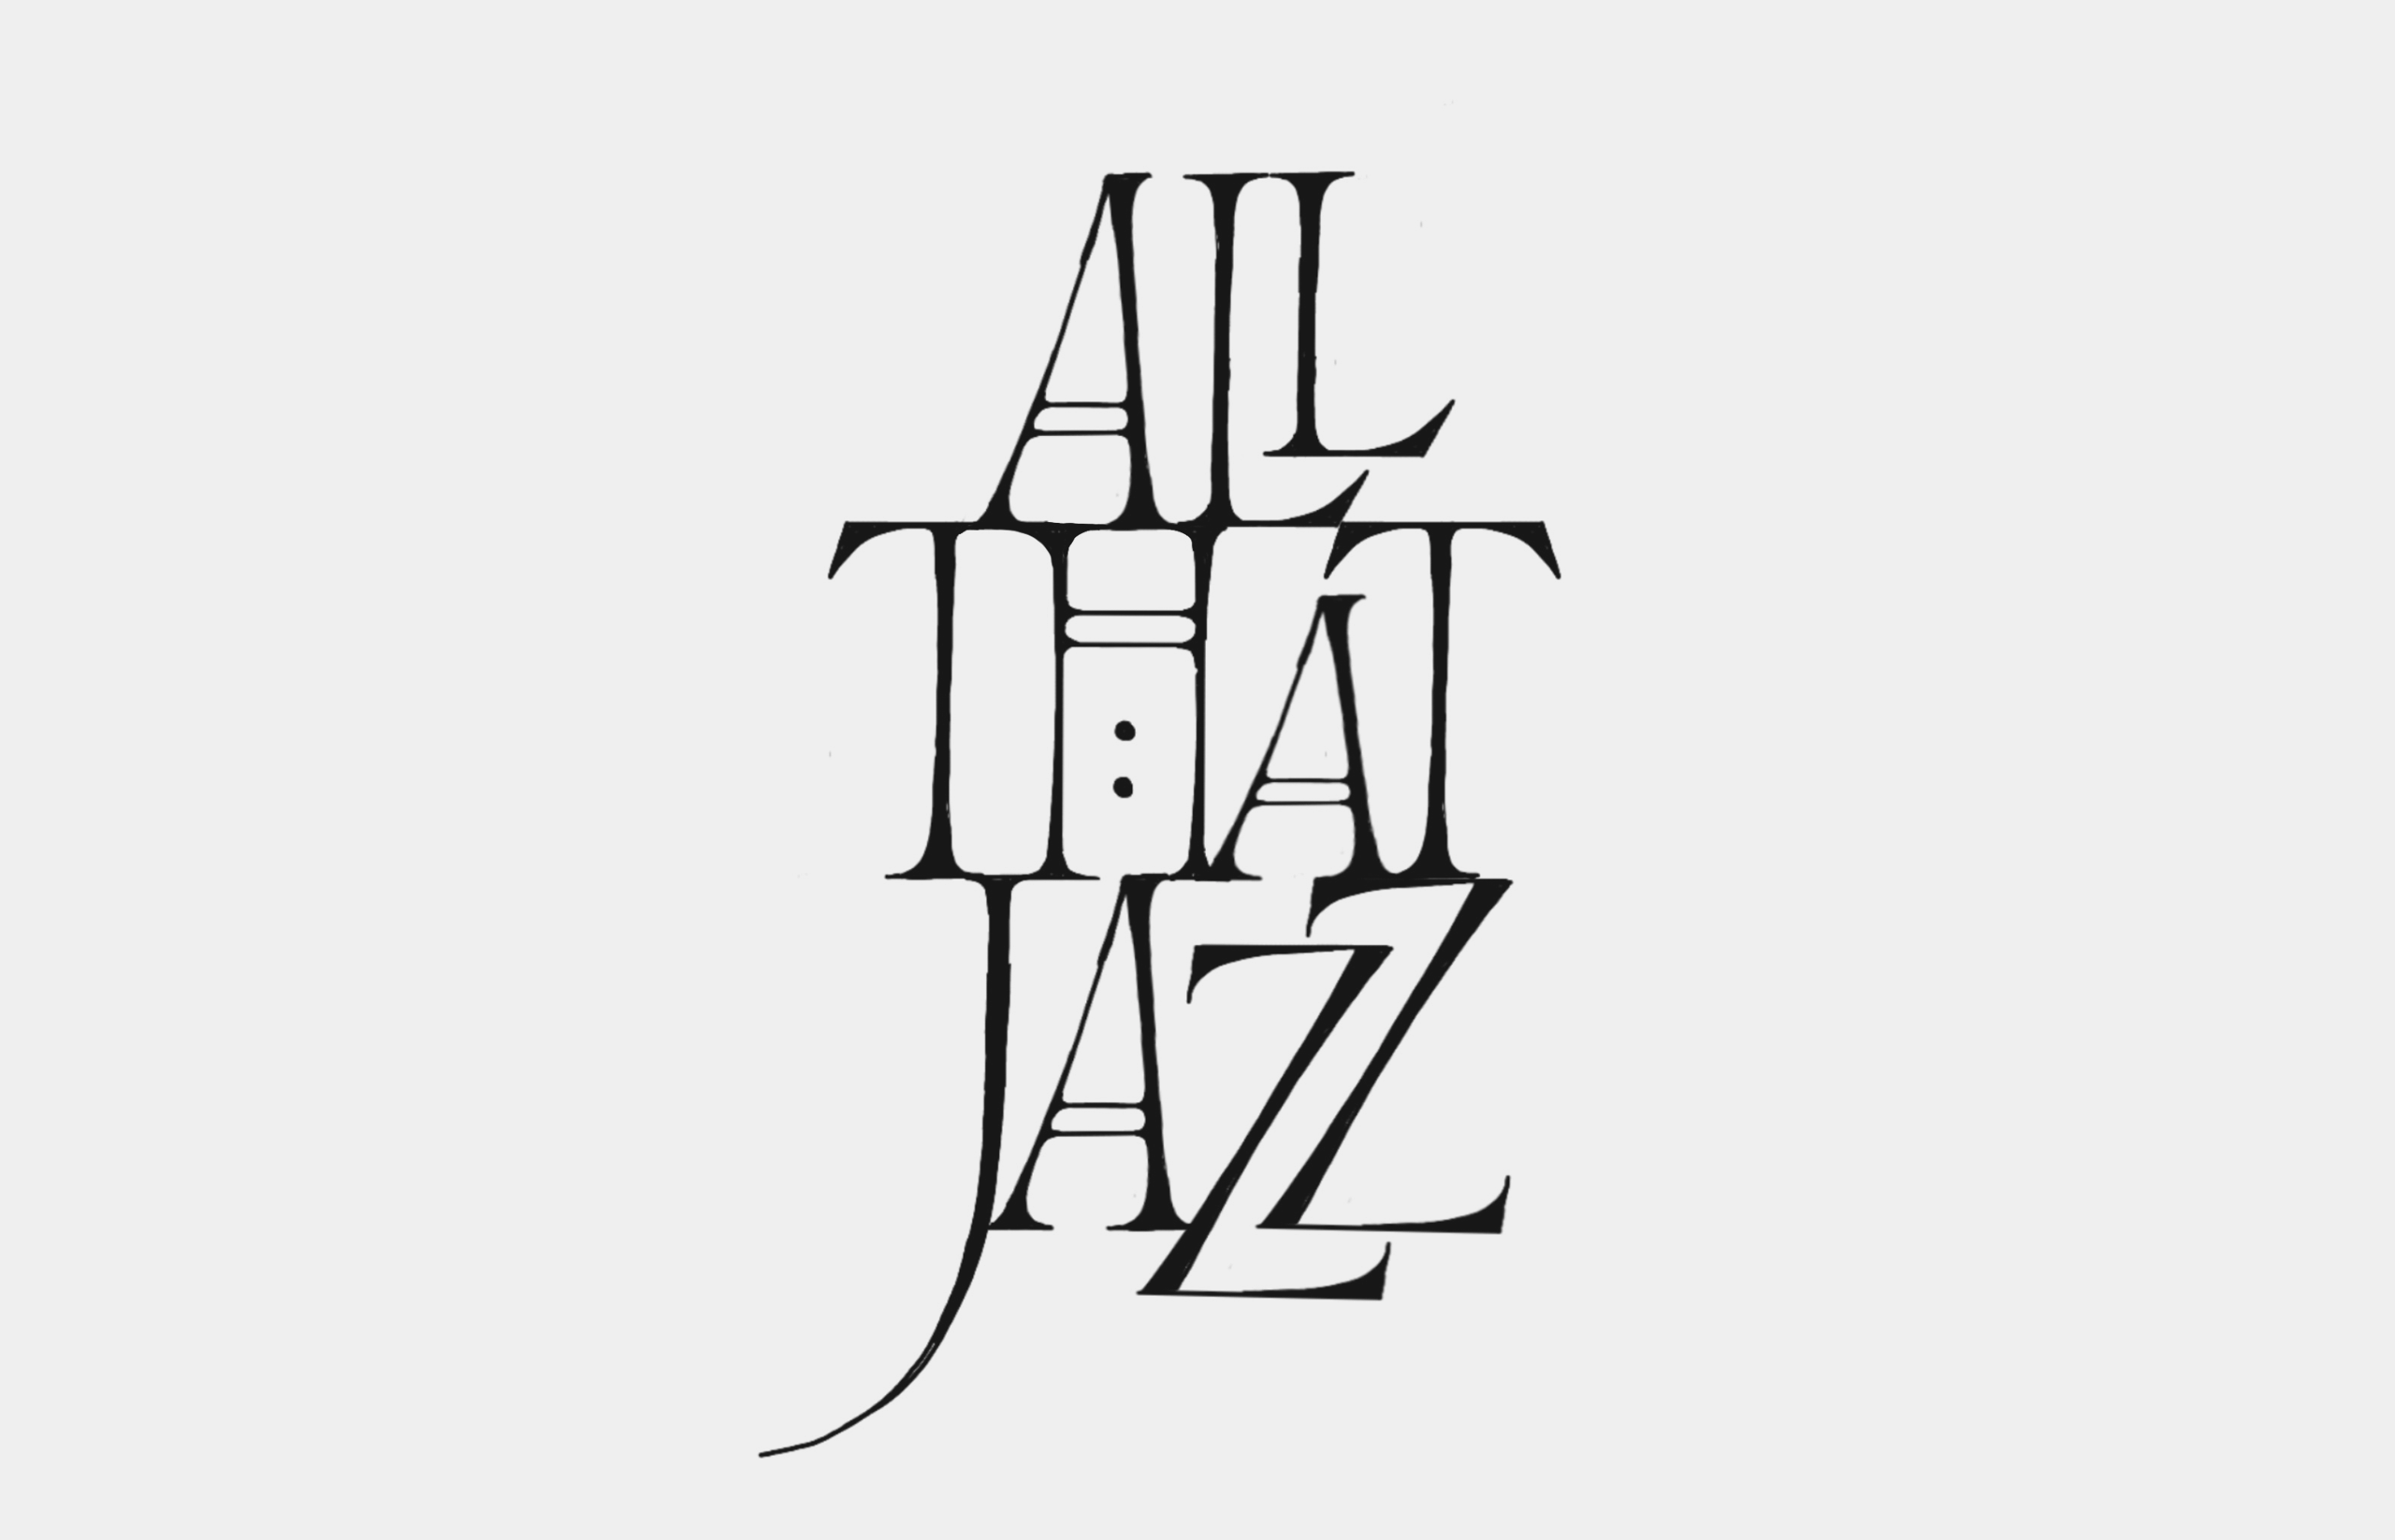 All That Jazz (sketch)